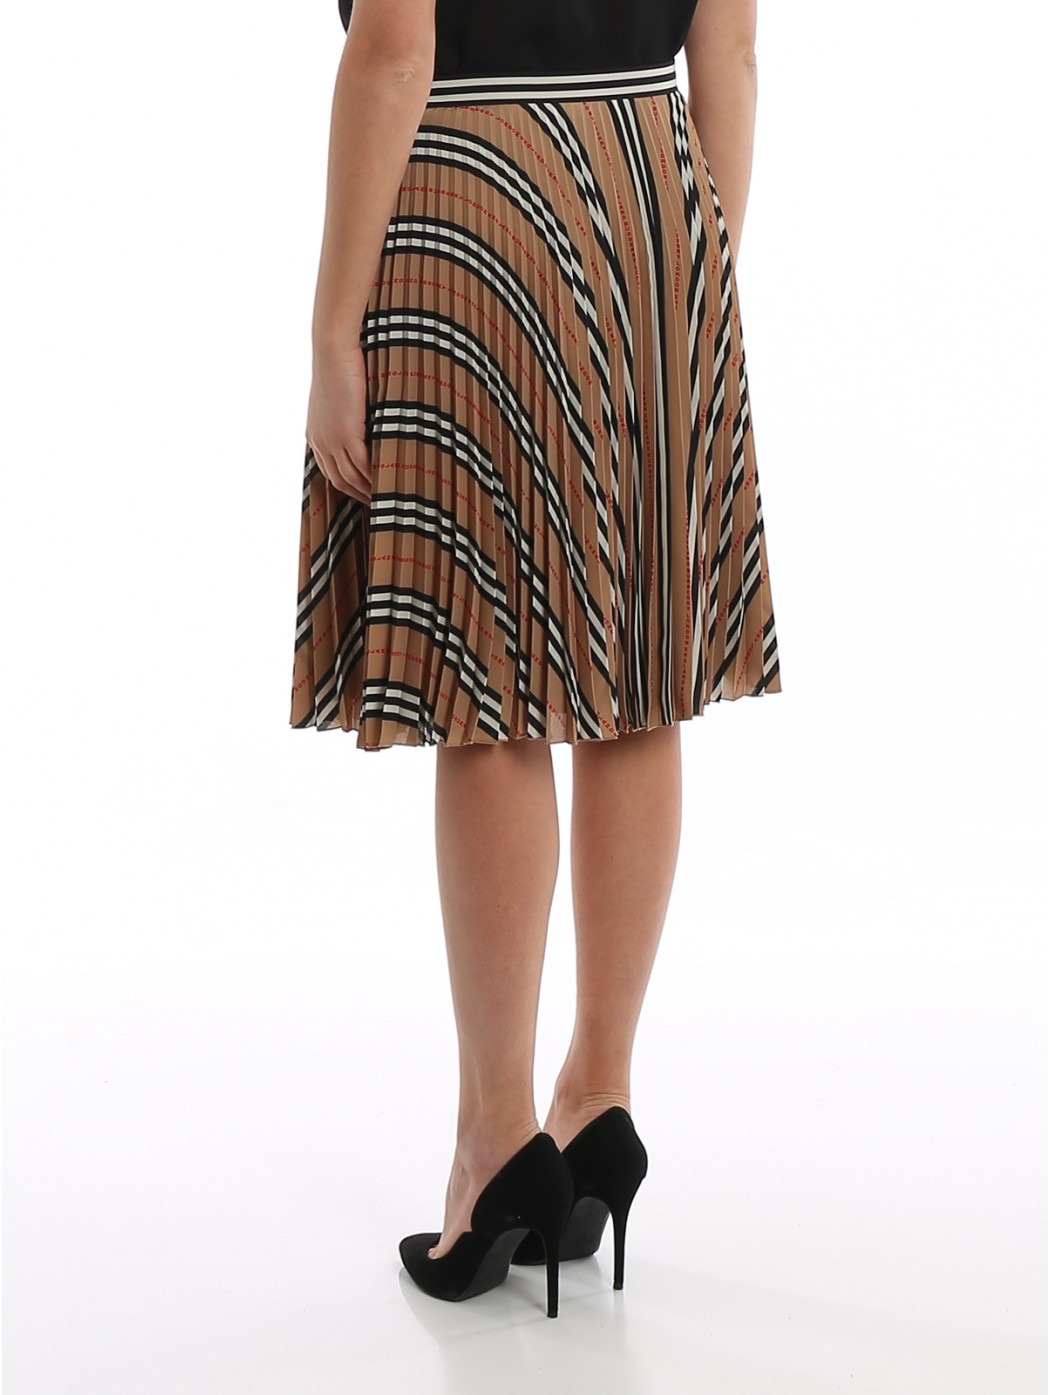 GONNA L. BURBERRY DONNA 8025671W:RERSBY ARCHIVE-BE